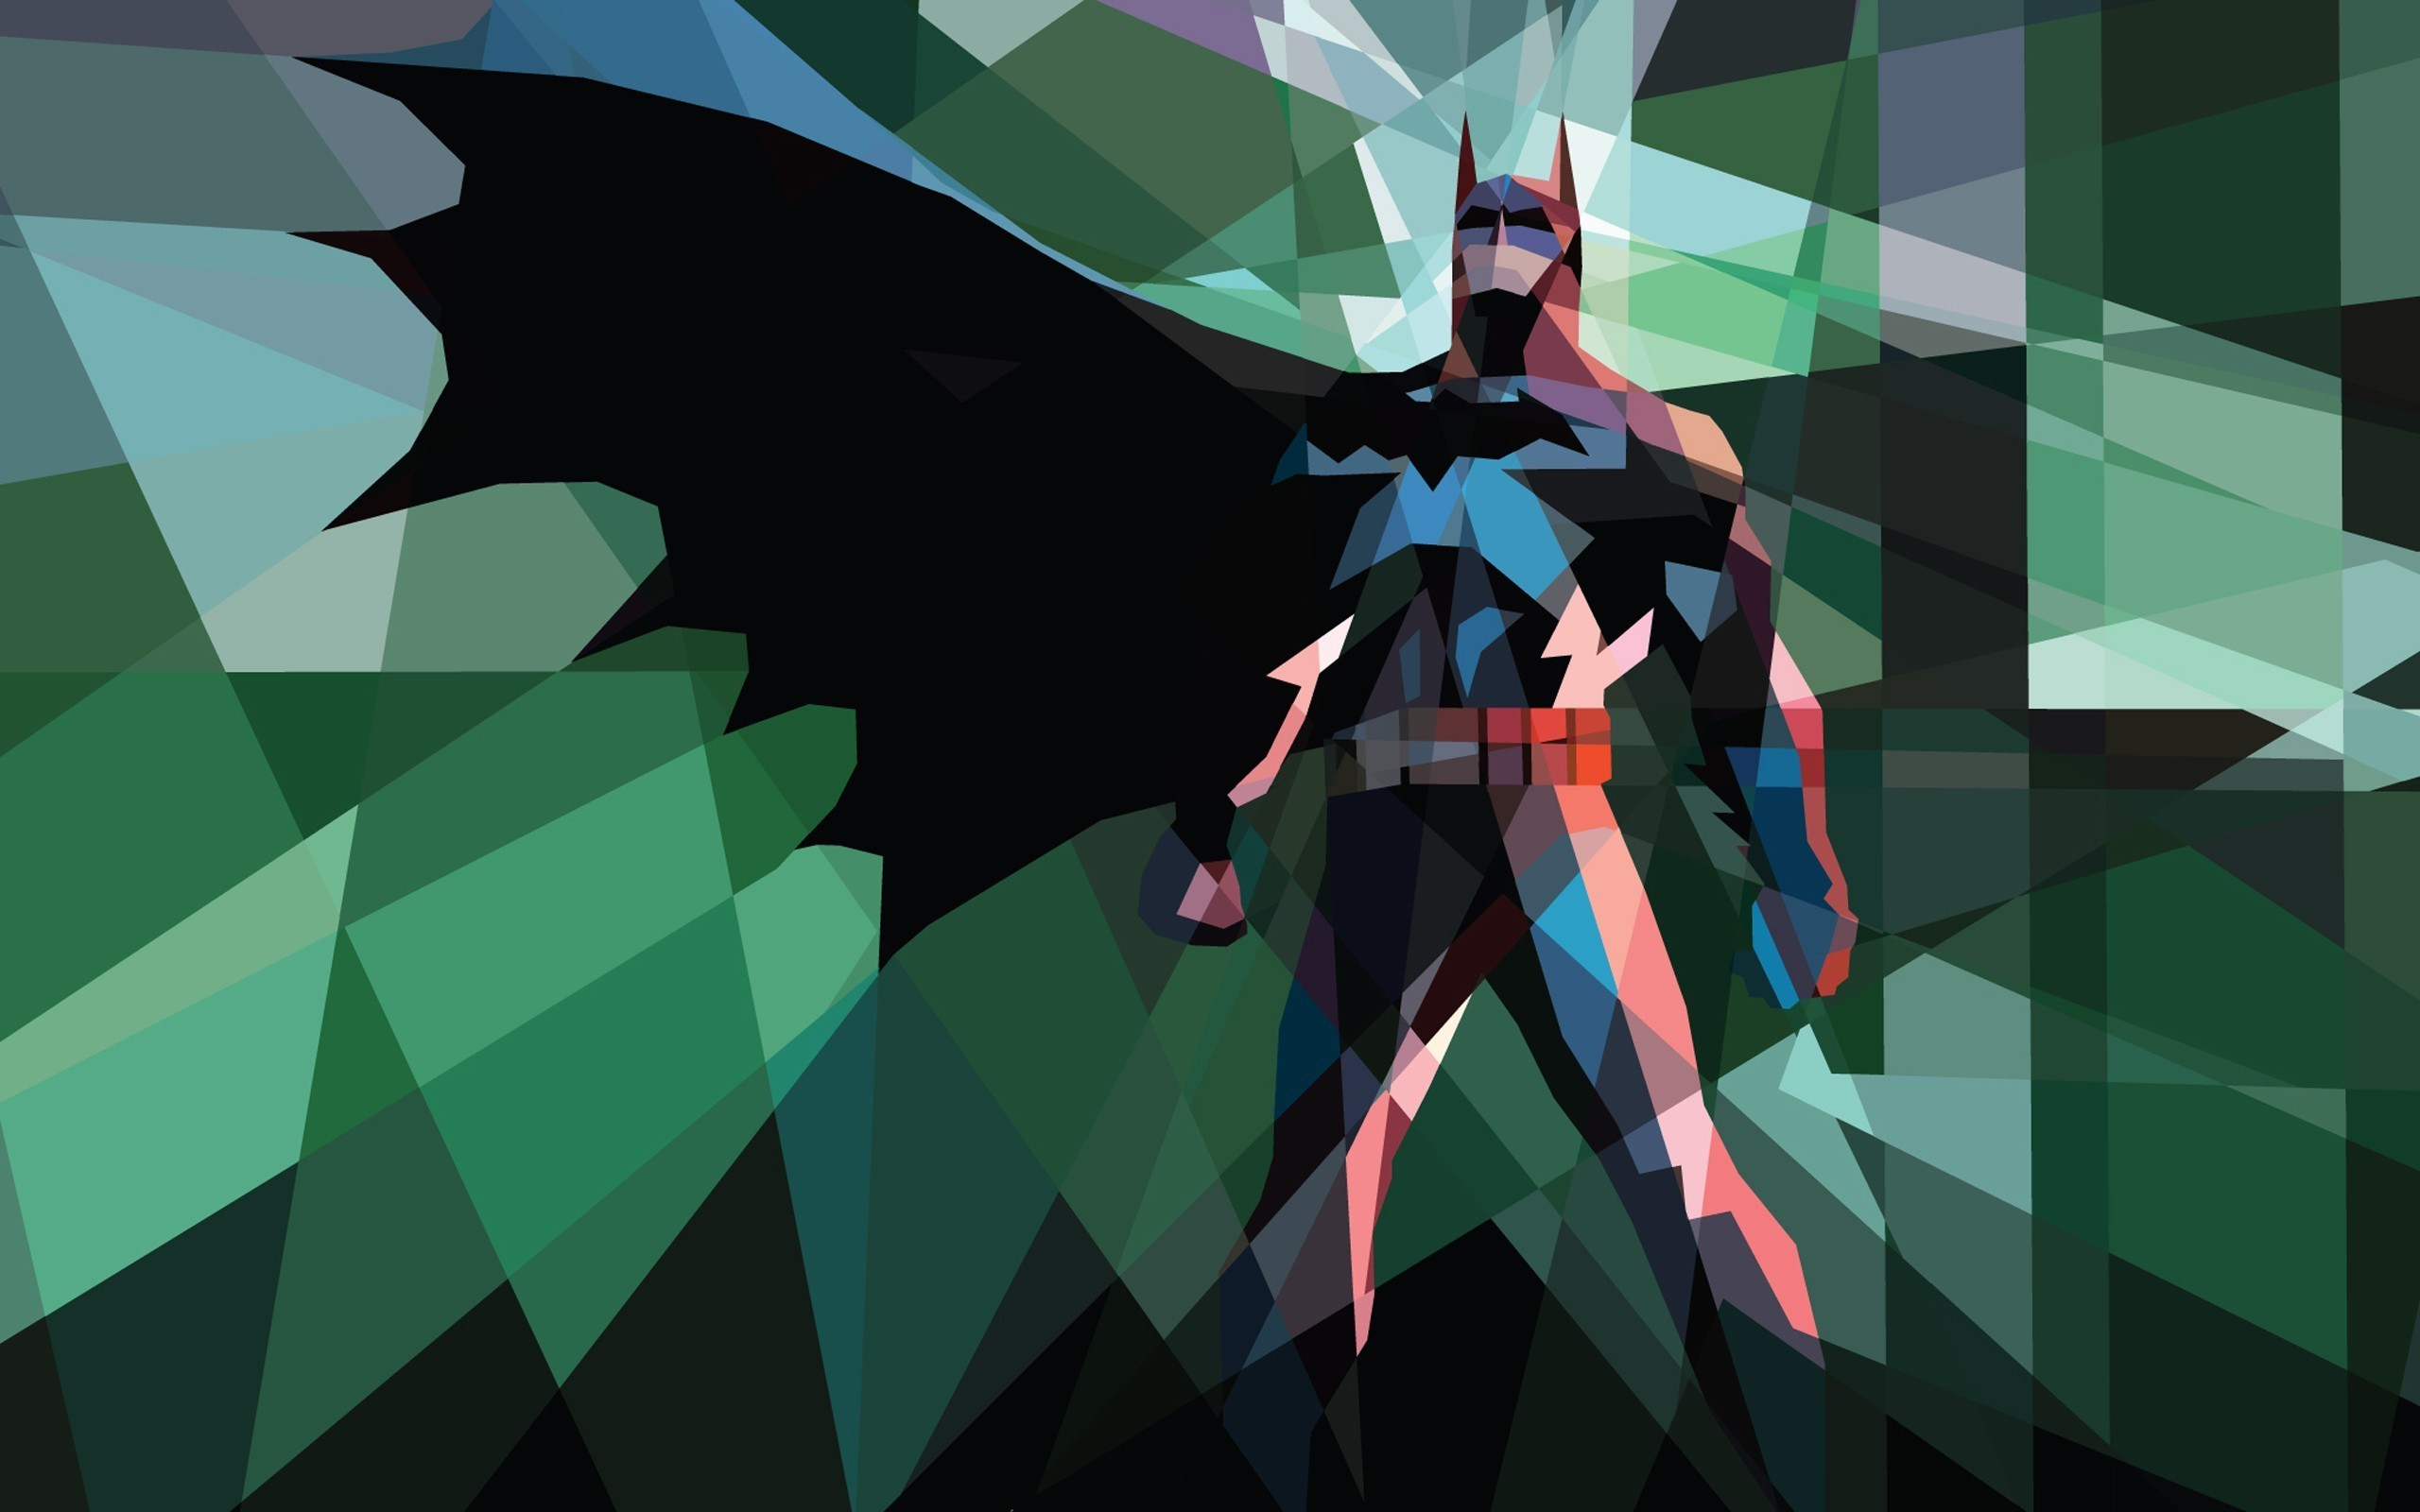 Polygon Batman wallpaper   1034148 2560x1600